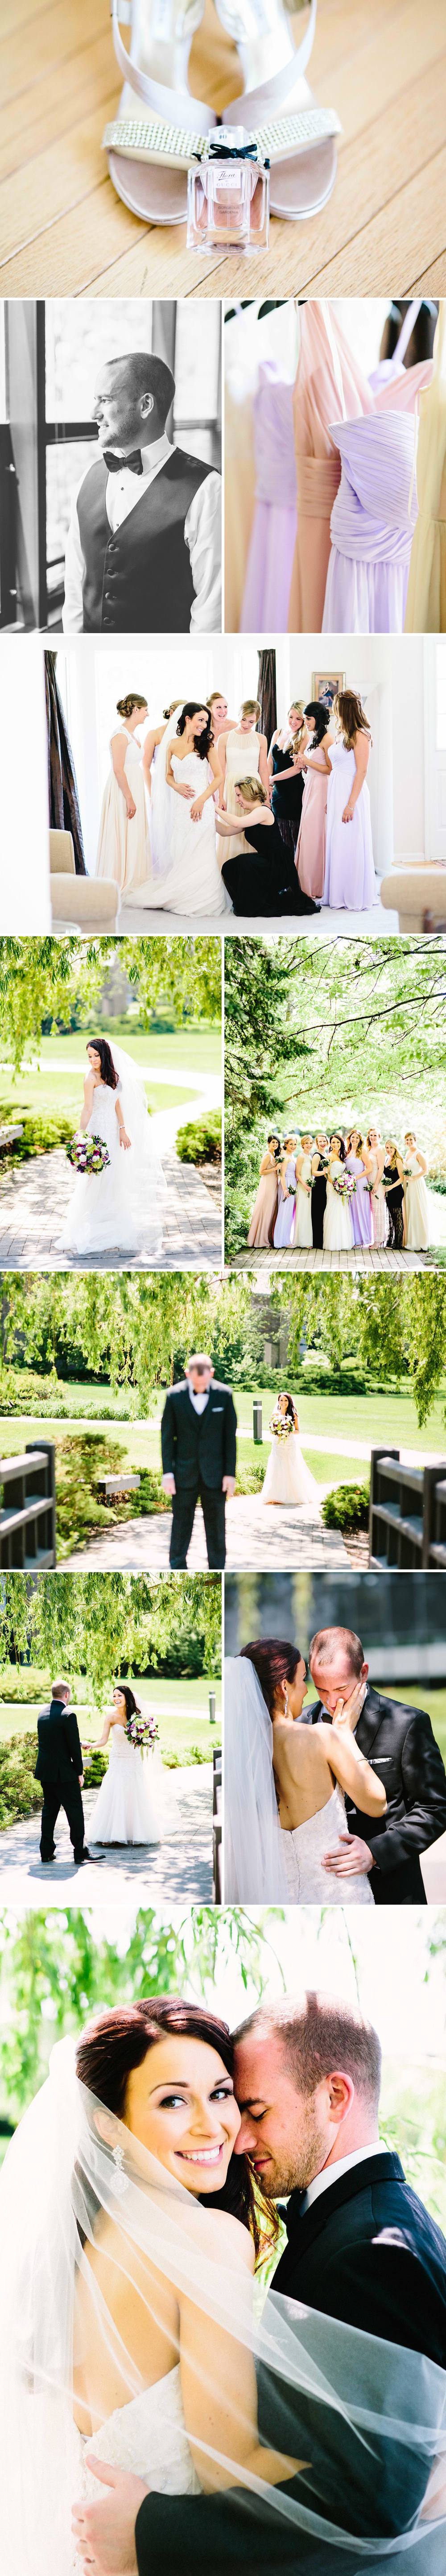 chicago-fine-art-wedding-photography-alger